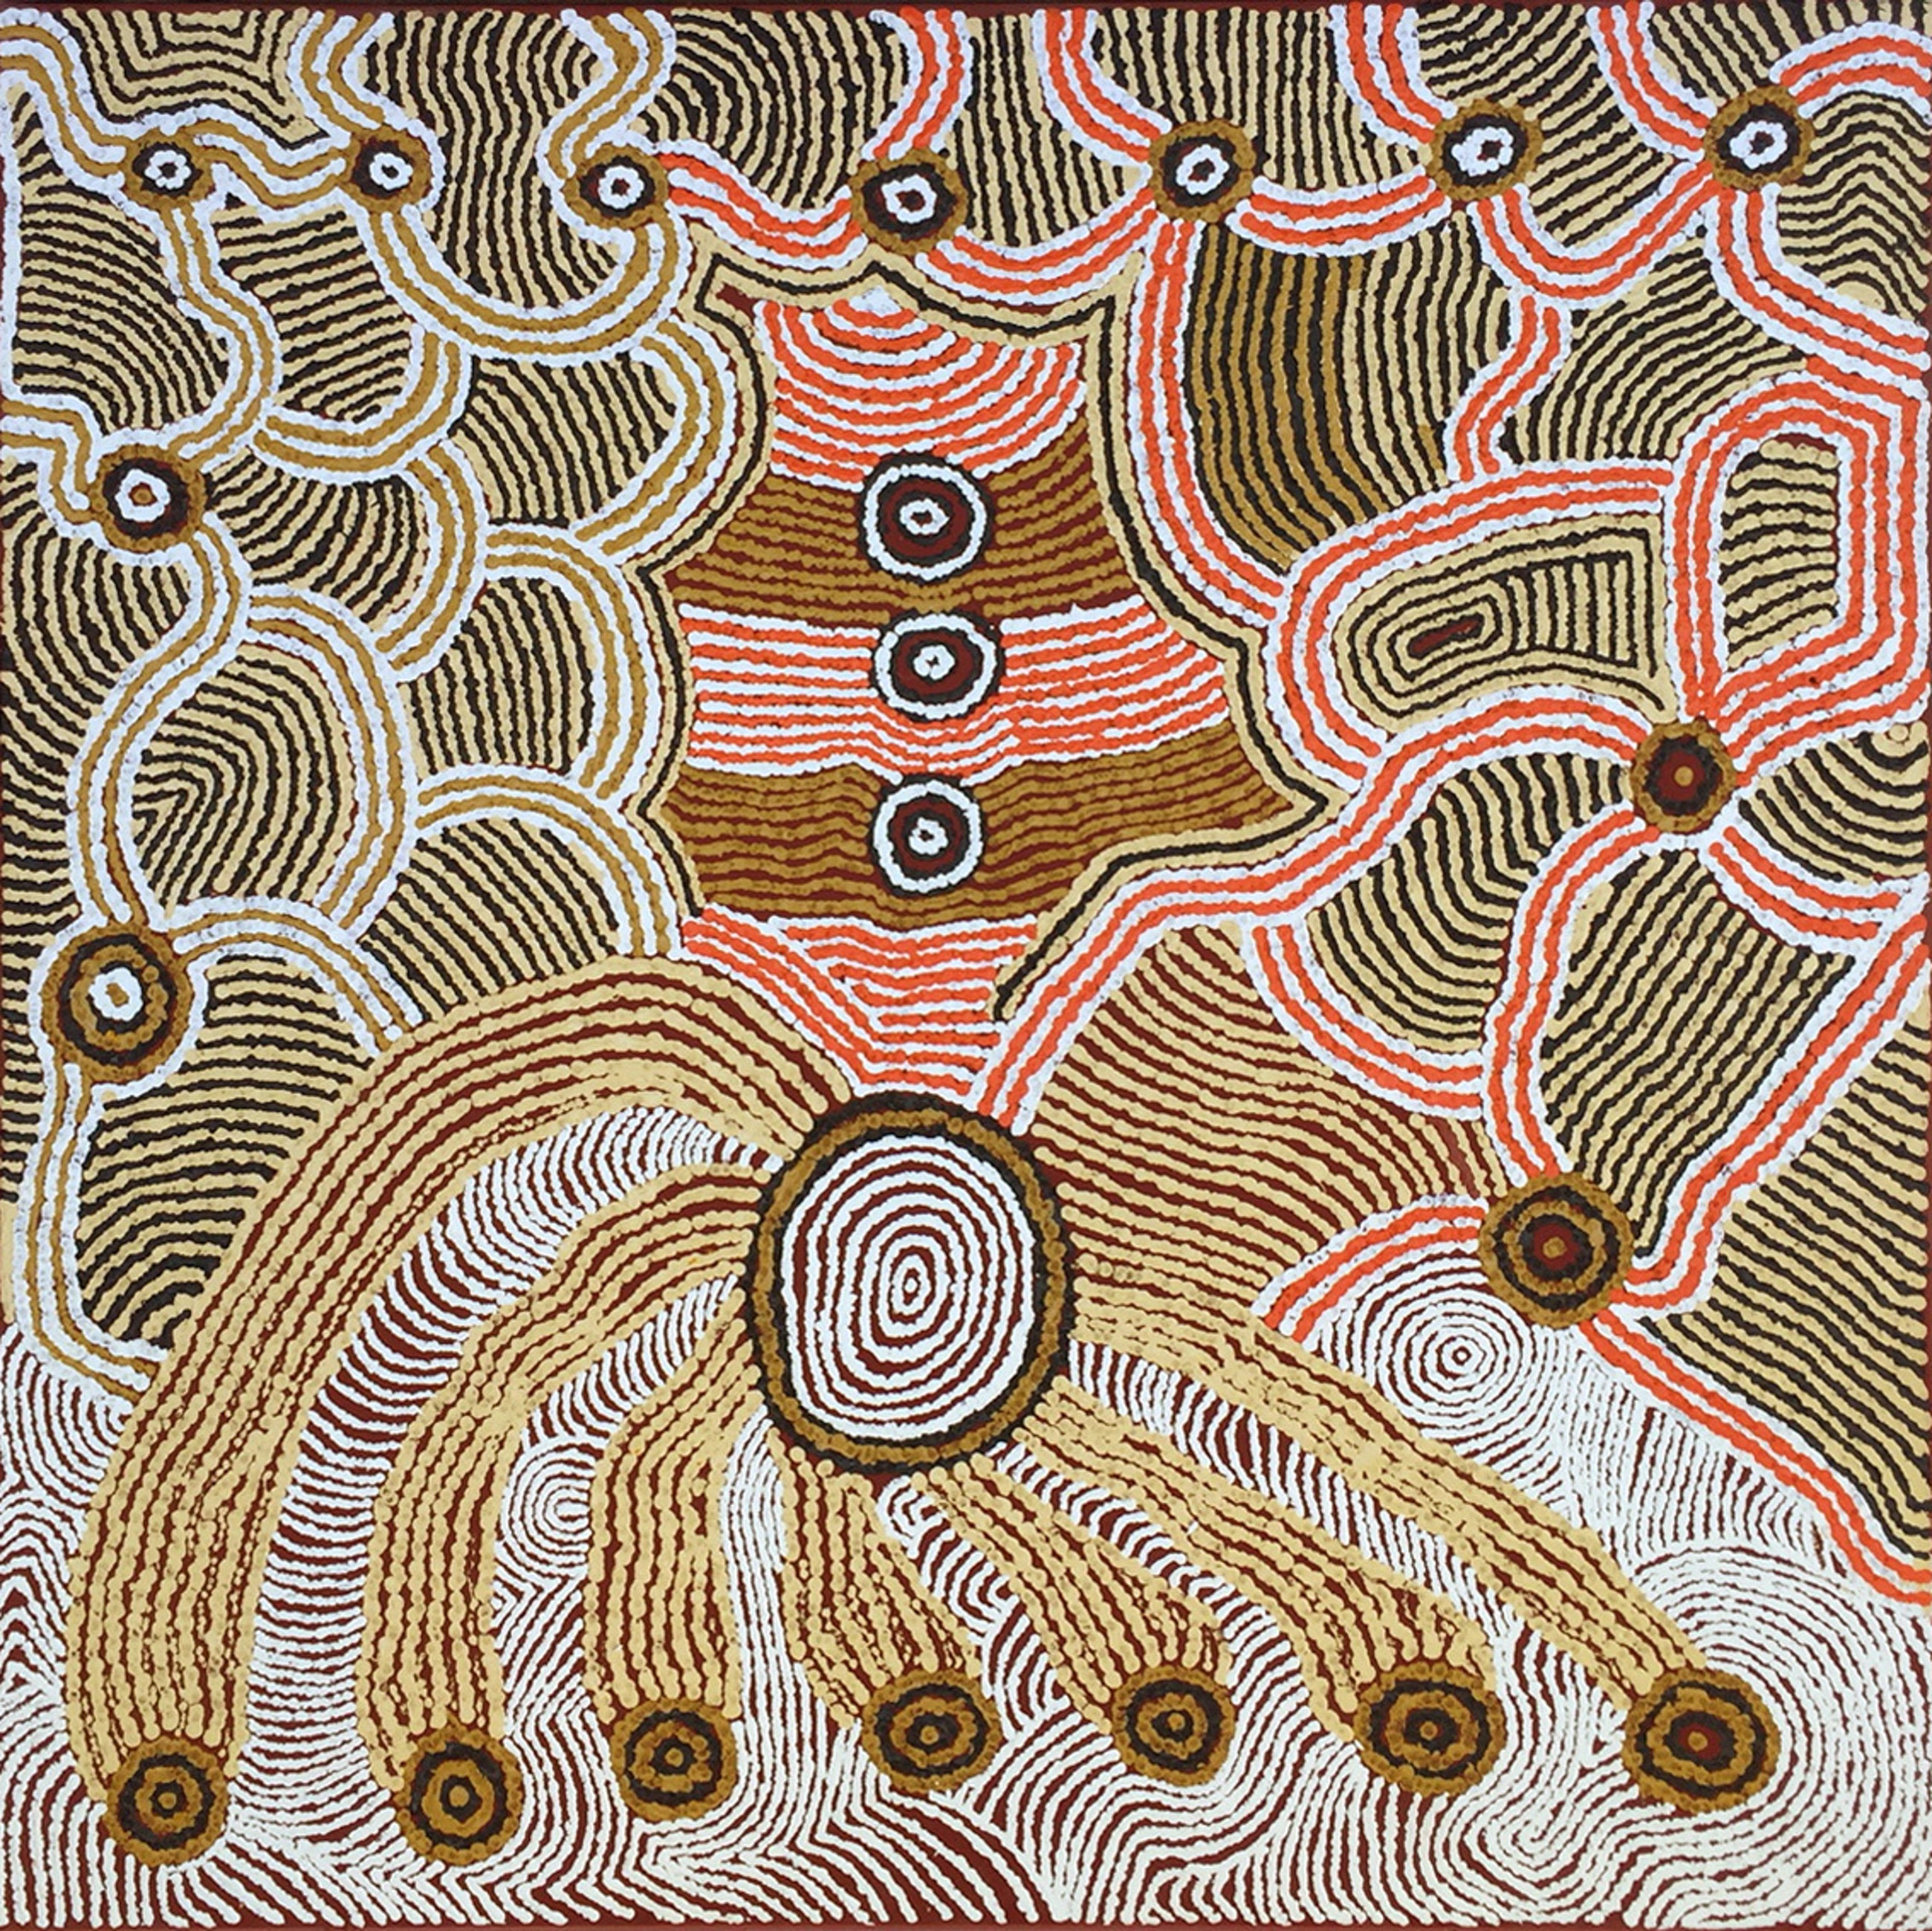 Tali (sand hills) by Marcia Mitchell of Papulankutja Artists